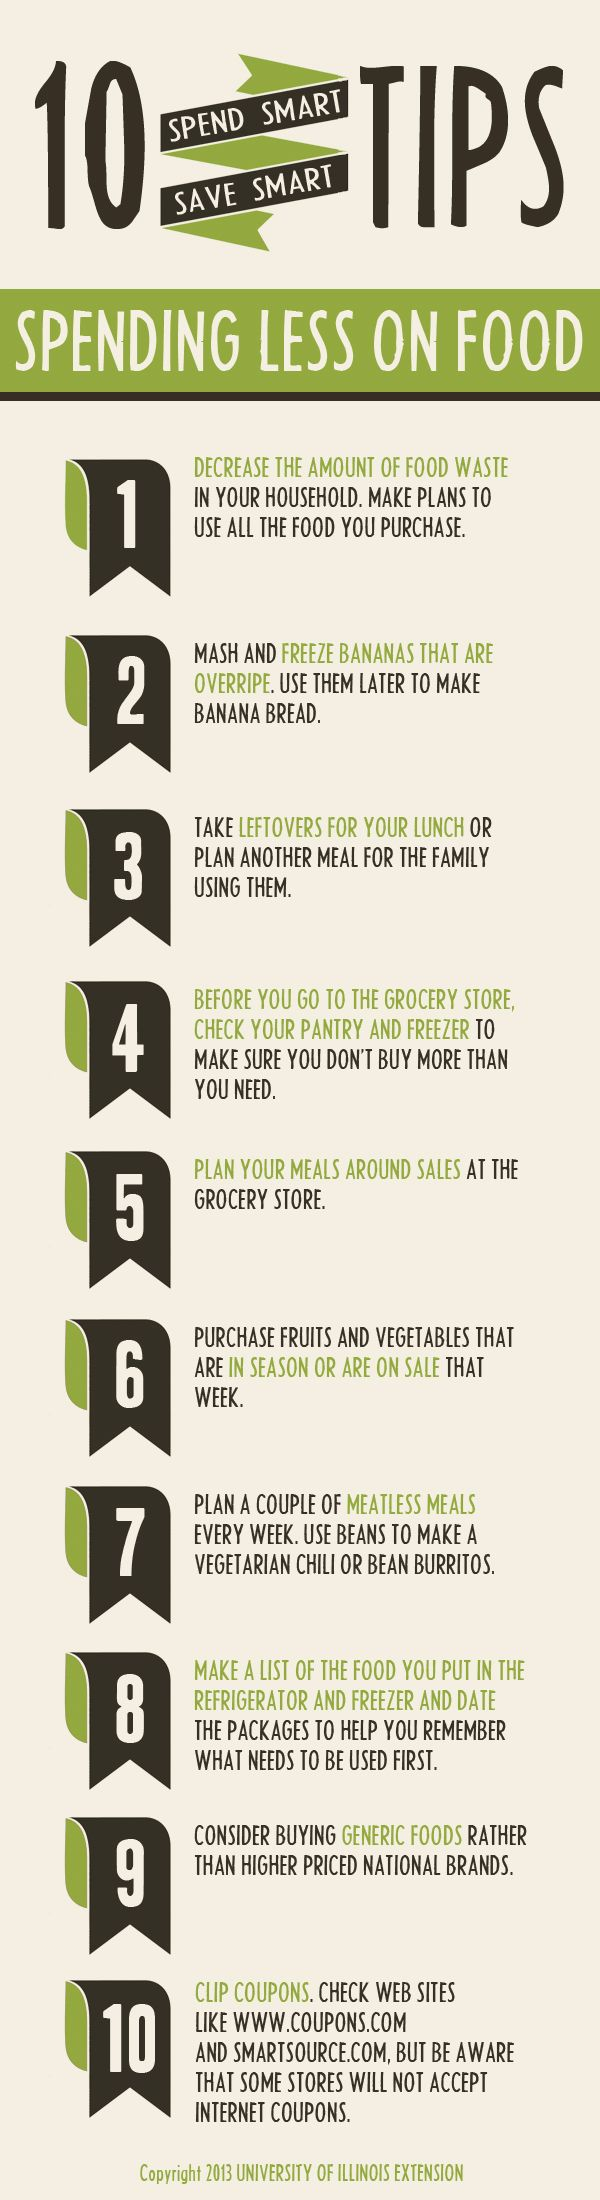 "SPENDING LESS ON FOOD: 10 ""Spend Smart, Save Smart"" Tips from the University of Illinois Extension."